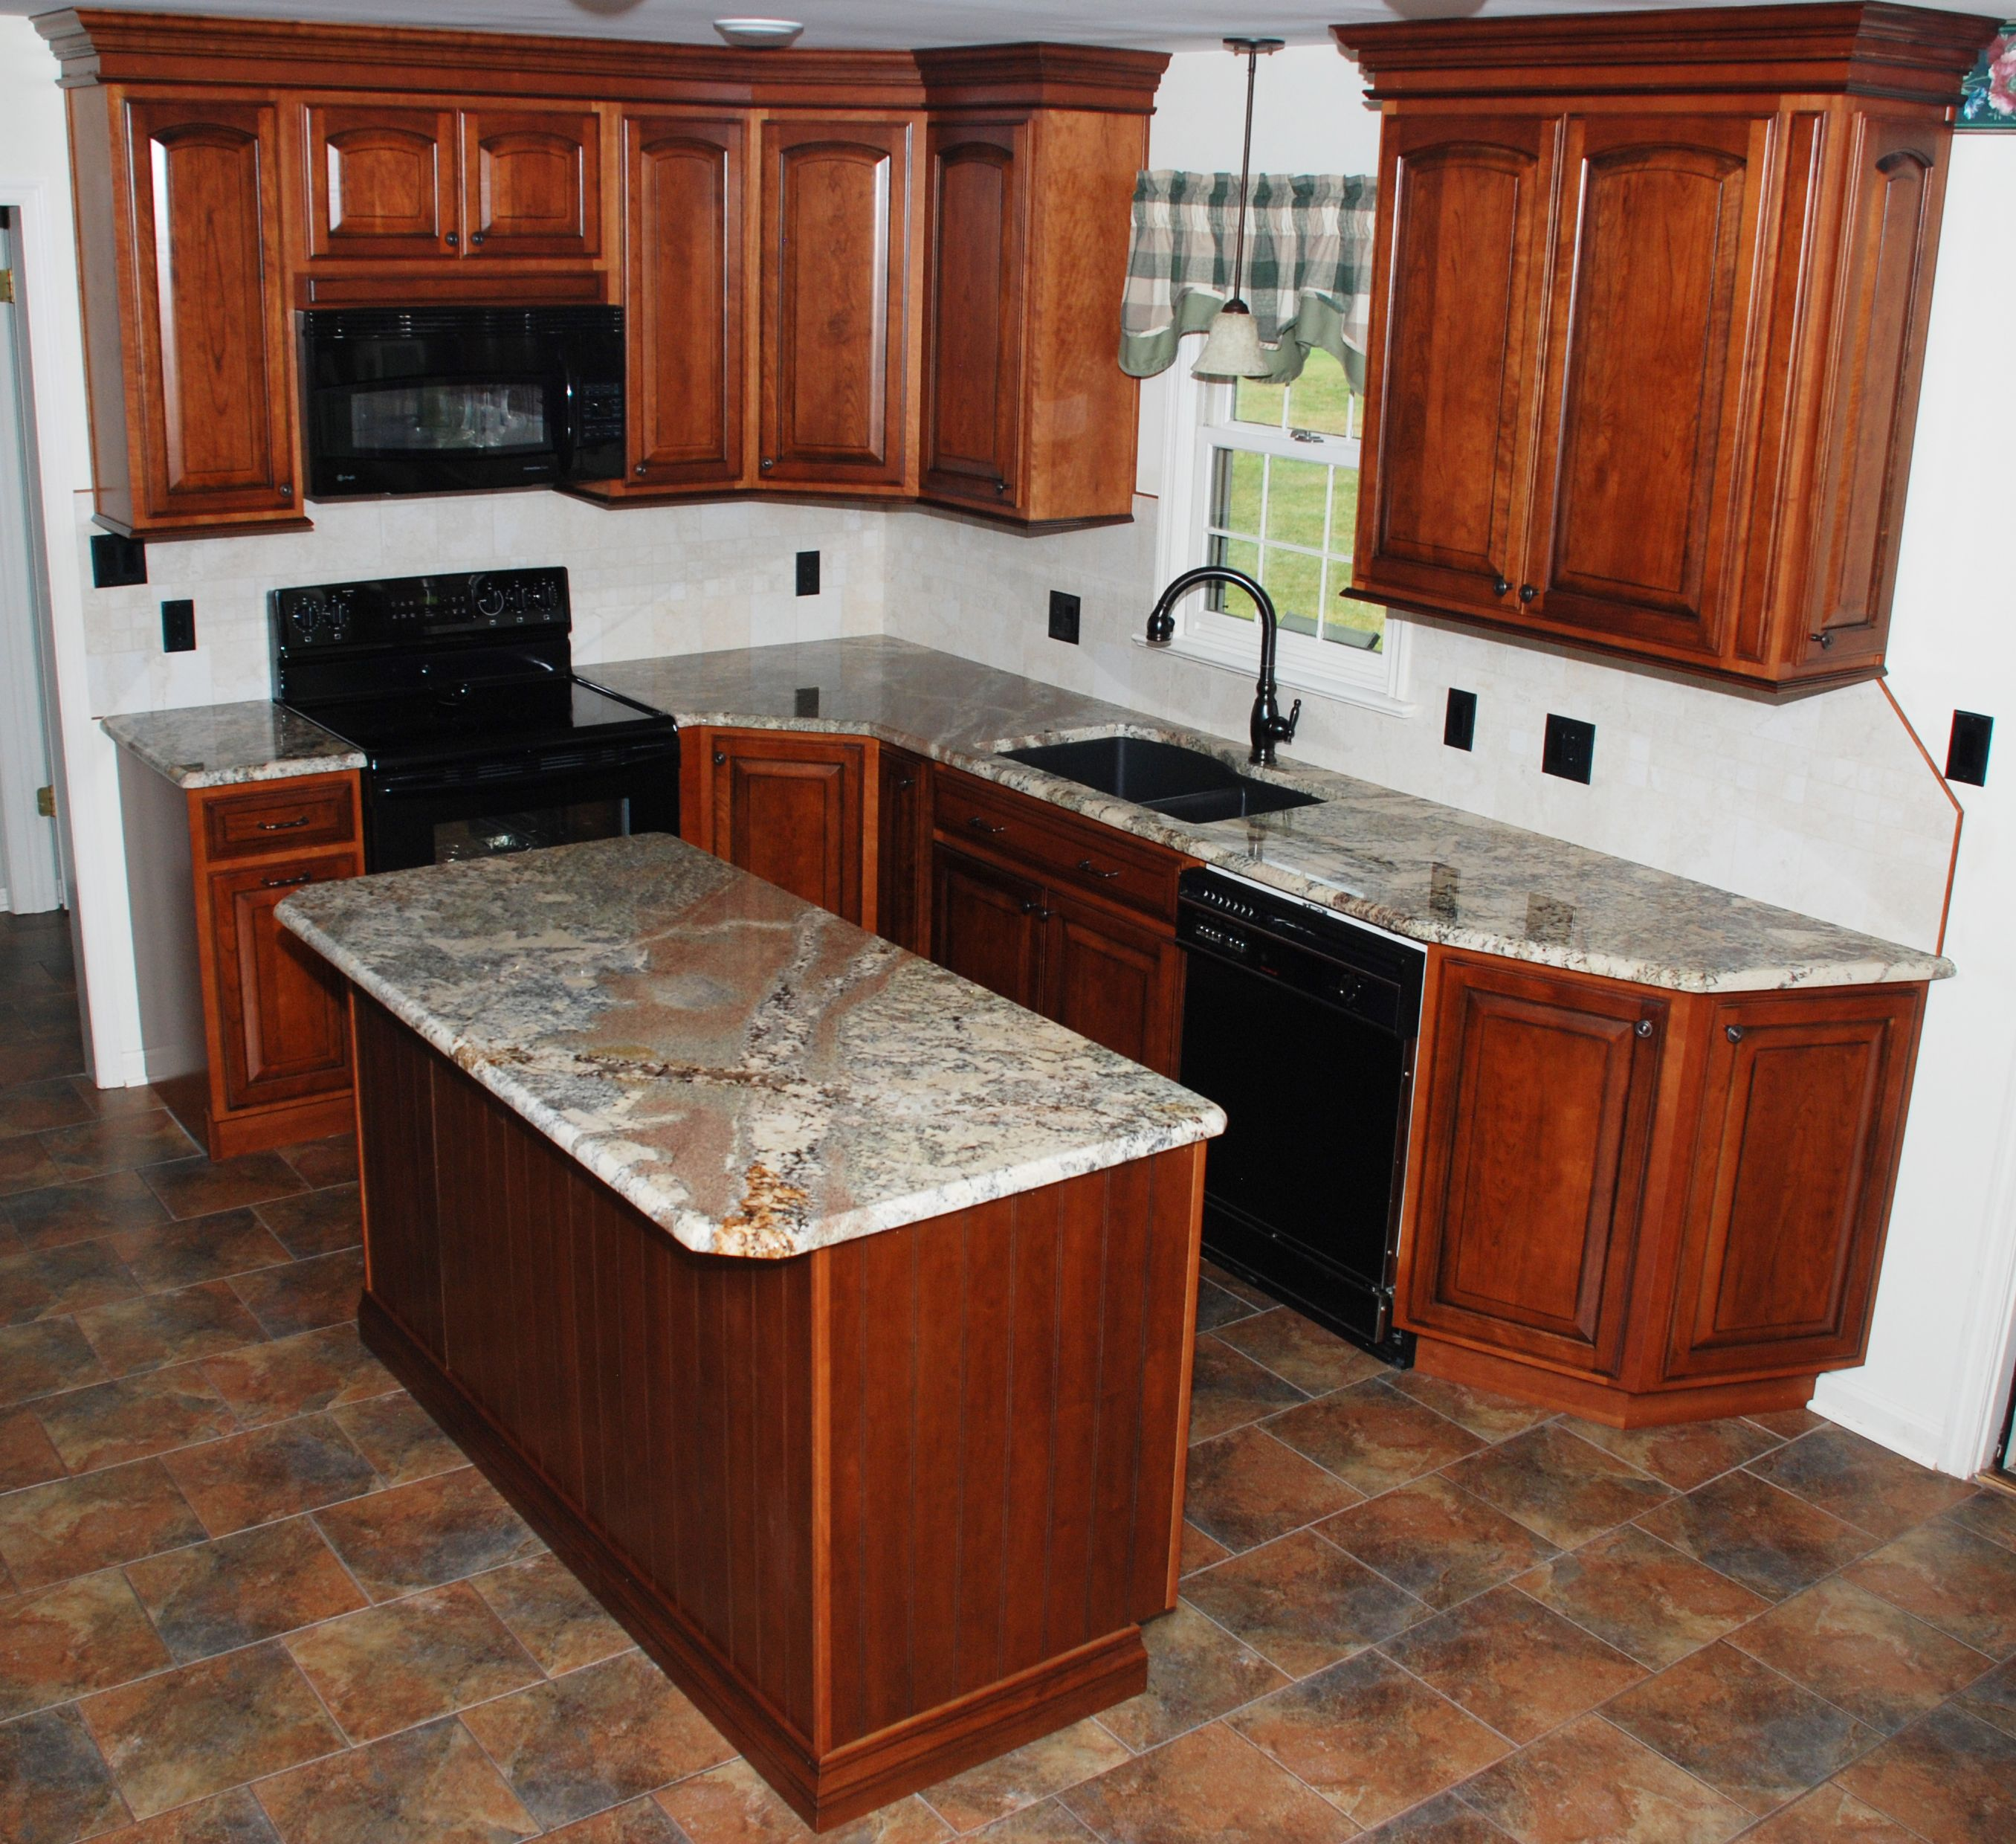 the vein of this river bordeaux granite counter top flows across the vein of this river bordeaux granite counter top flows across the island and into the